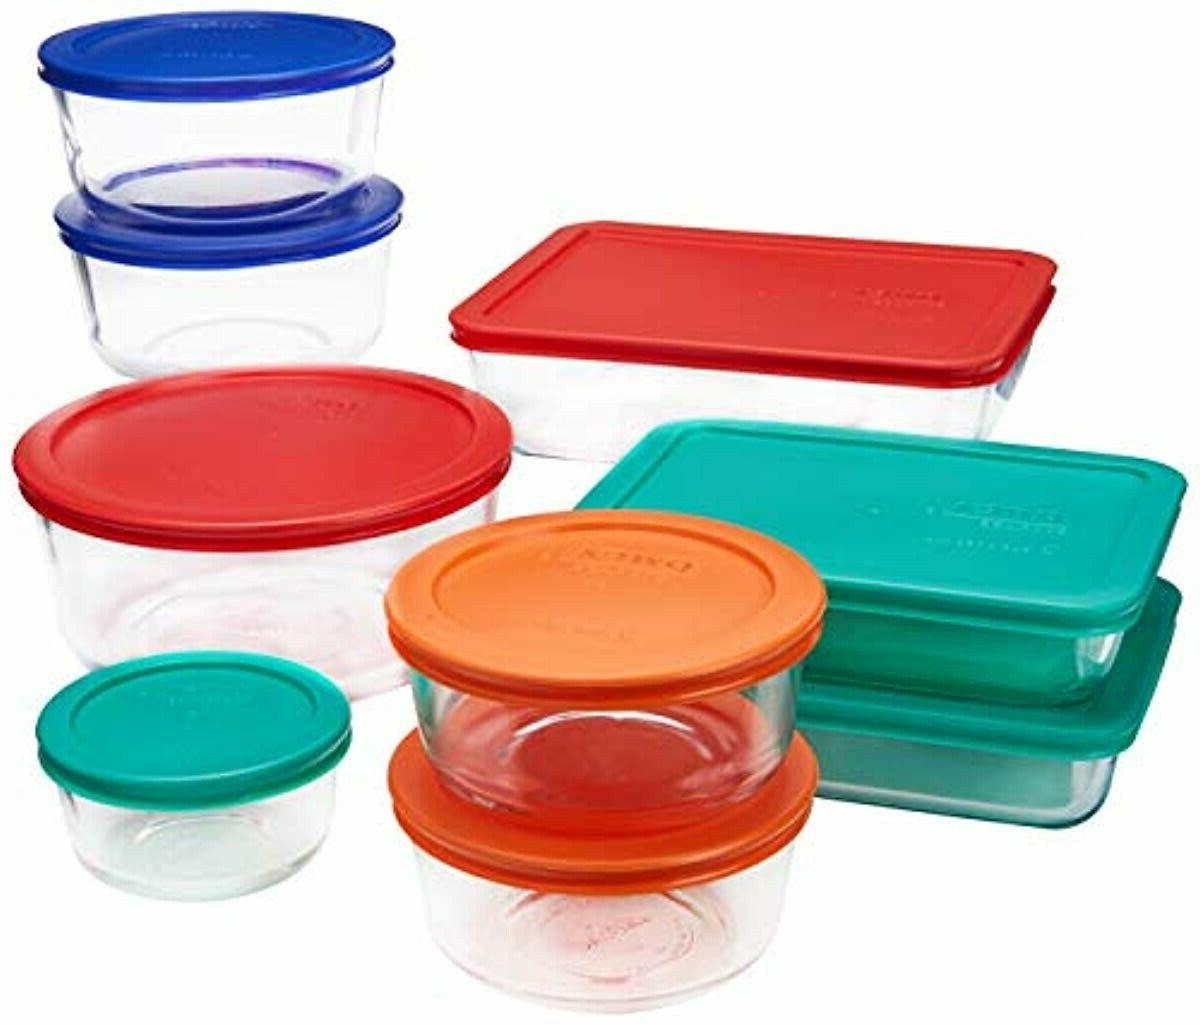 simply store glass rectangular and round food